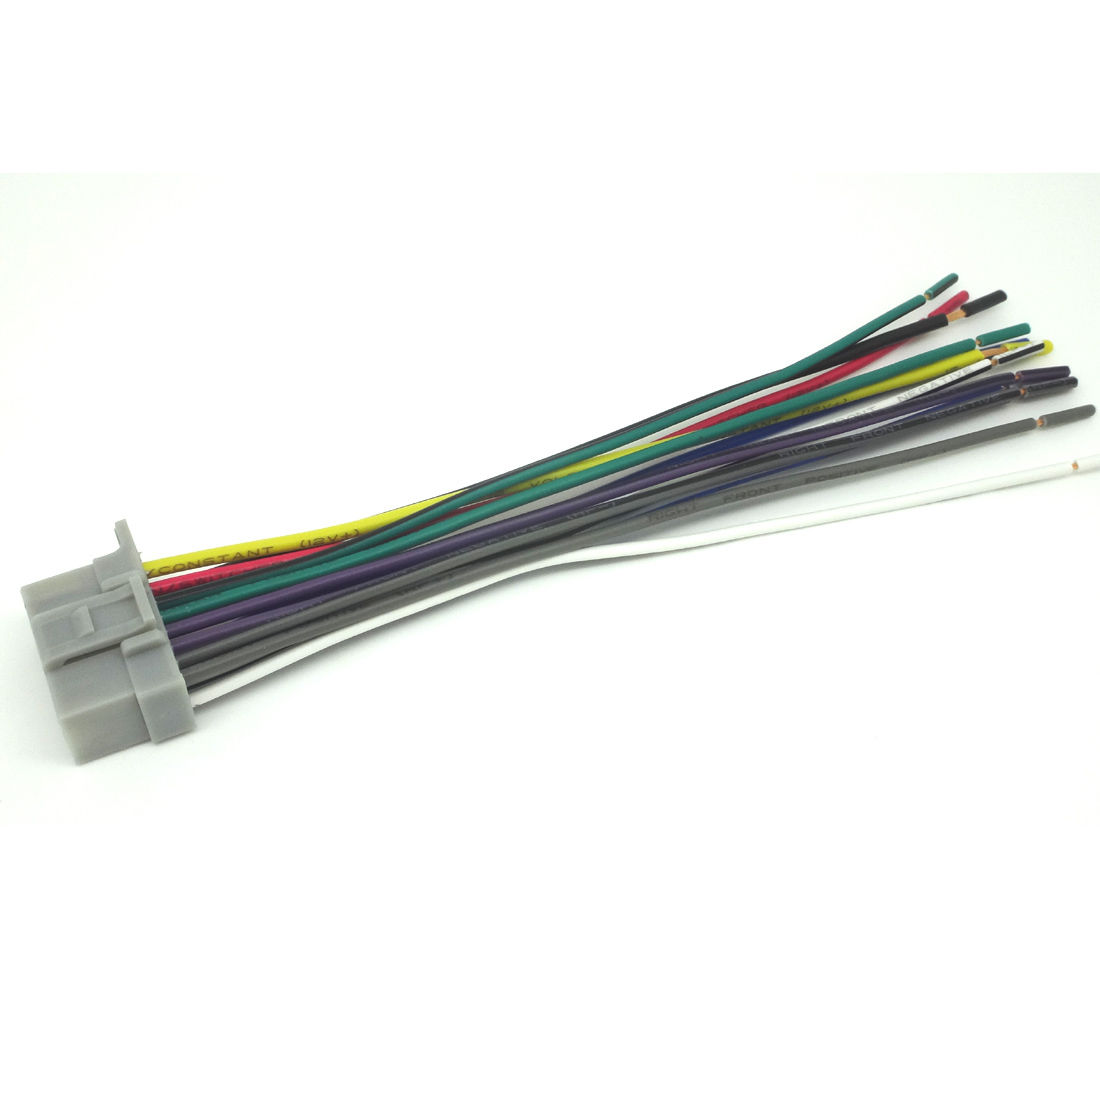 hight resolution of details about for 16pin wire harness for panasonic cq c3400u cq c3403u cq c3405u tao